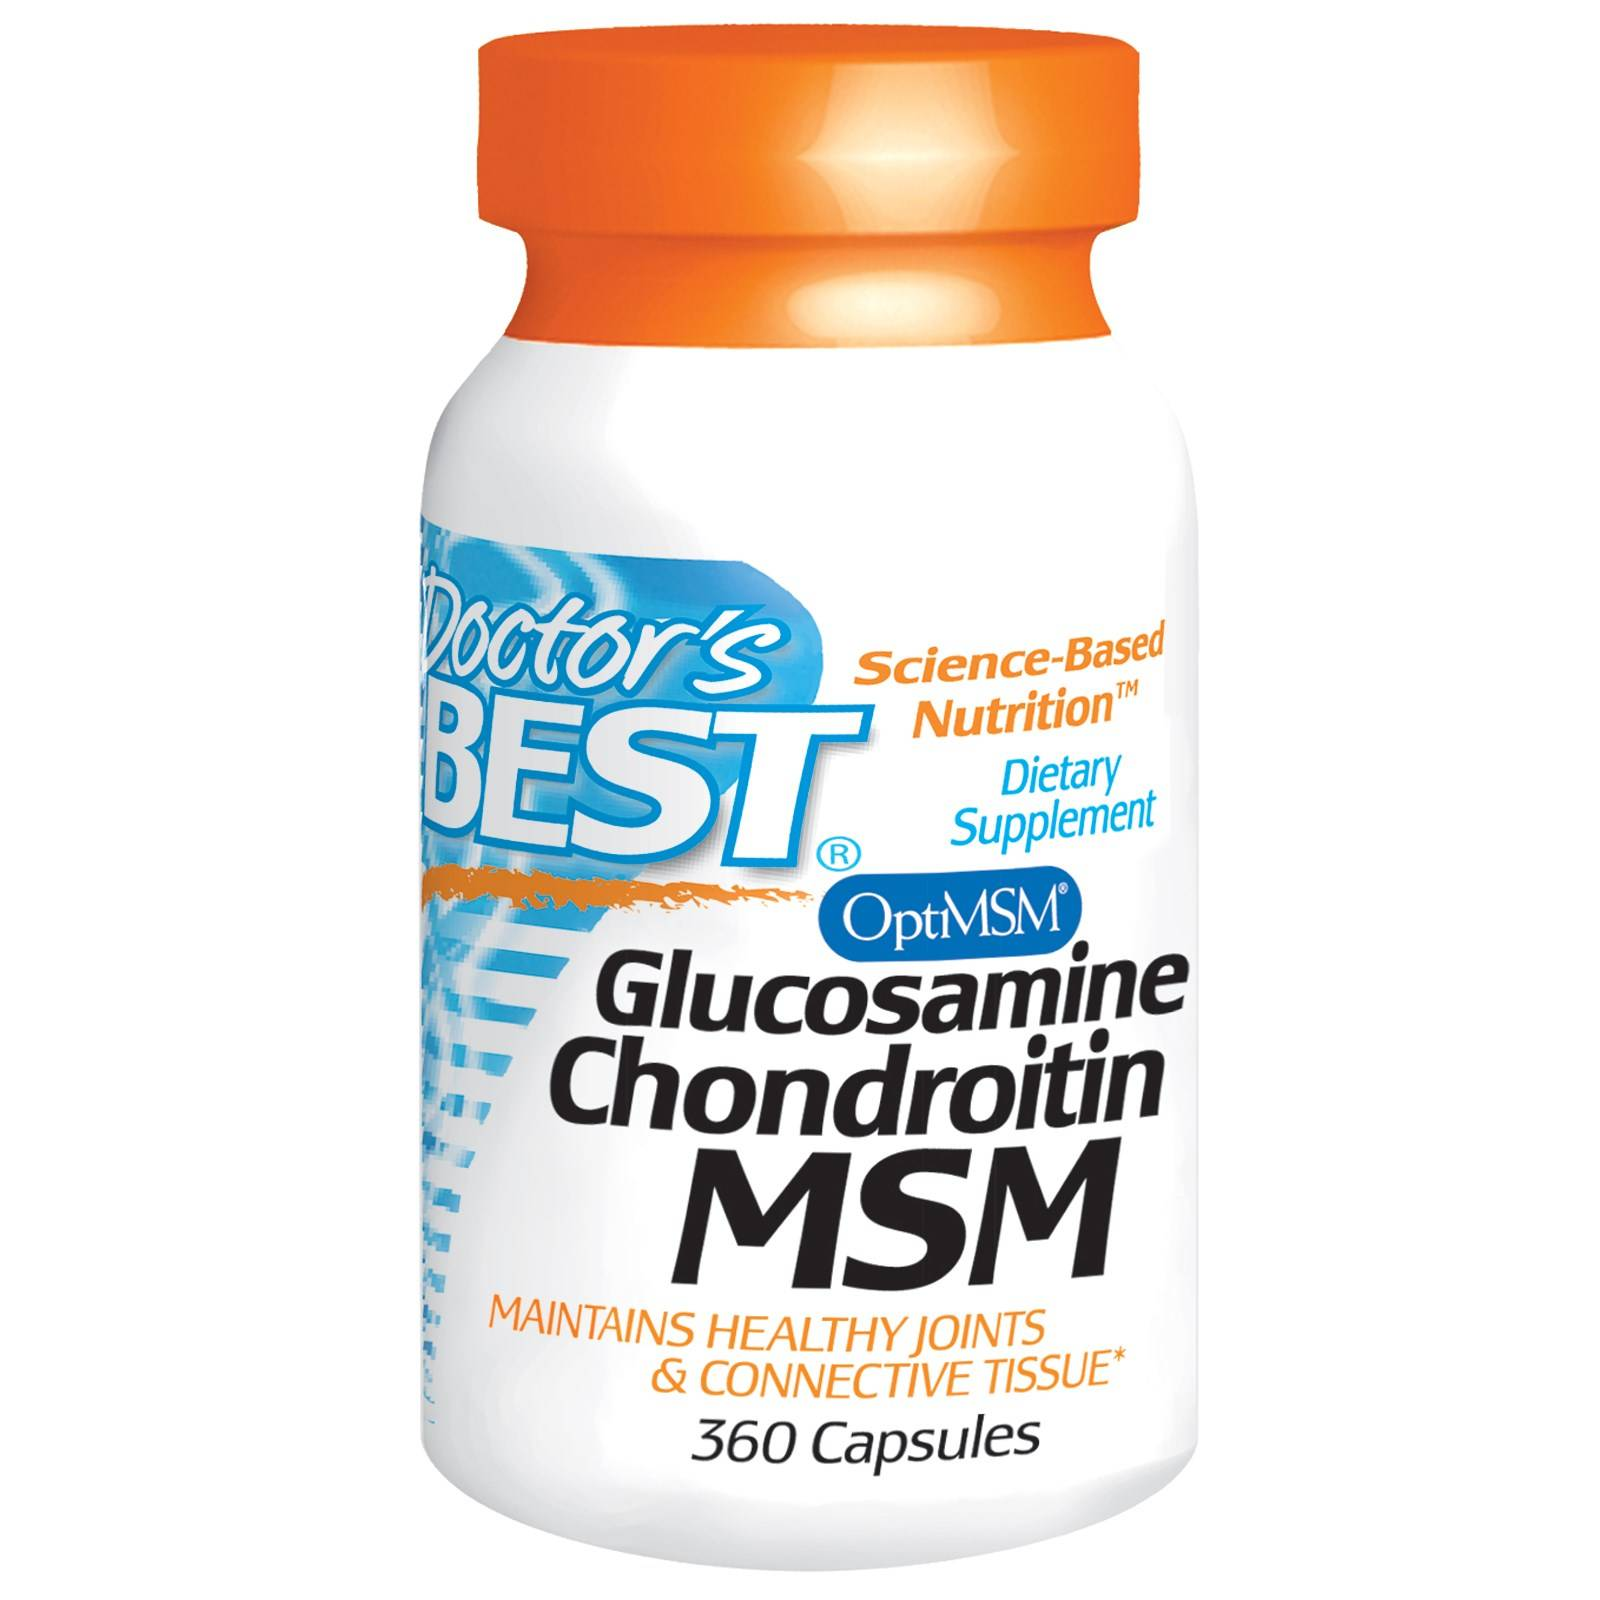 Doctors Best Doctor's Best, Glucosamine Chondroitin MSM, 360 Capsules